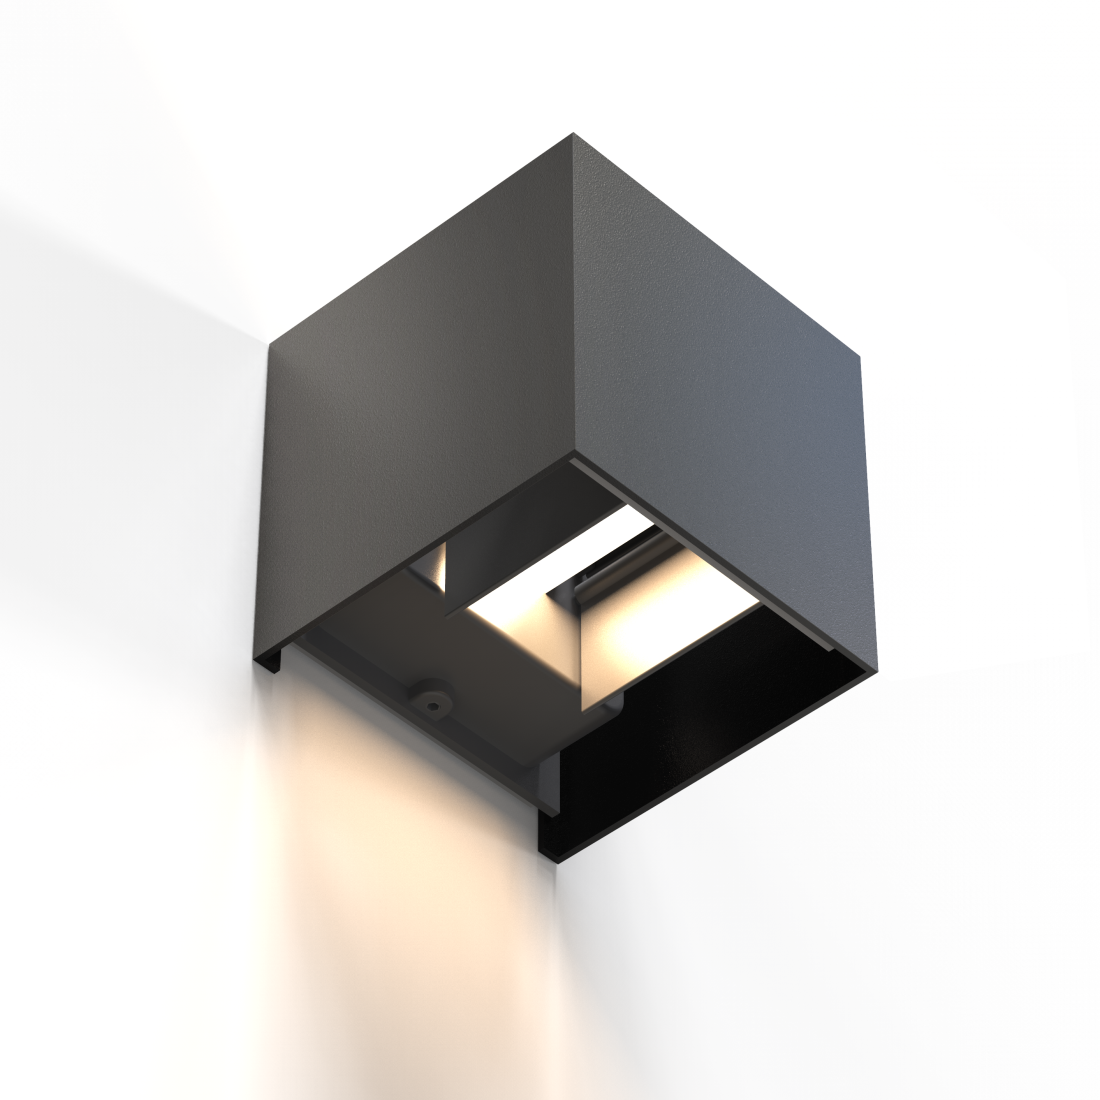 abx High-Res Image - Hama, WiFi Wall Light, Square, 10 cm, IP 44 for Indoors and Outdoors, black